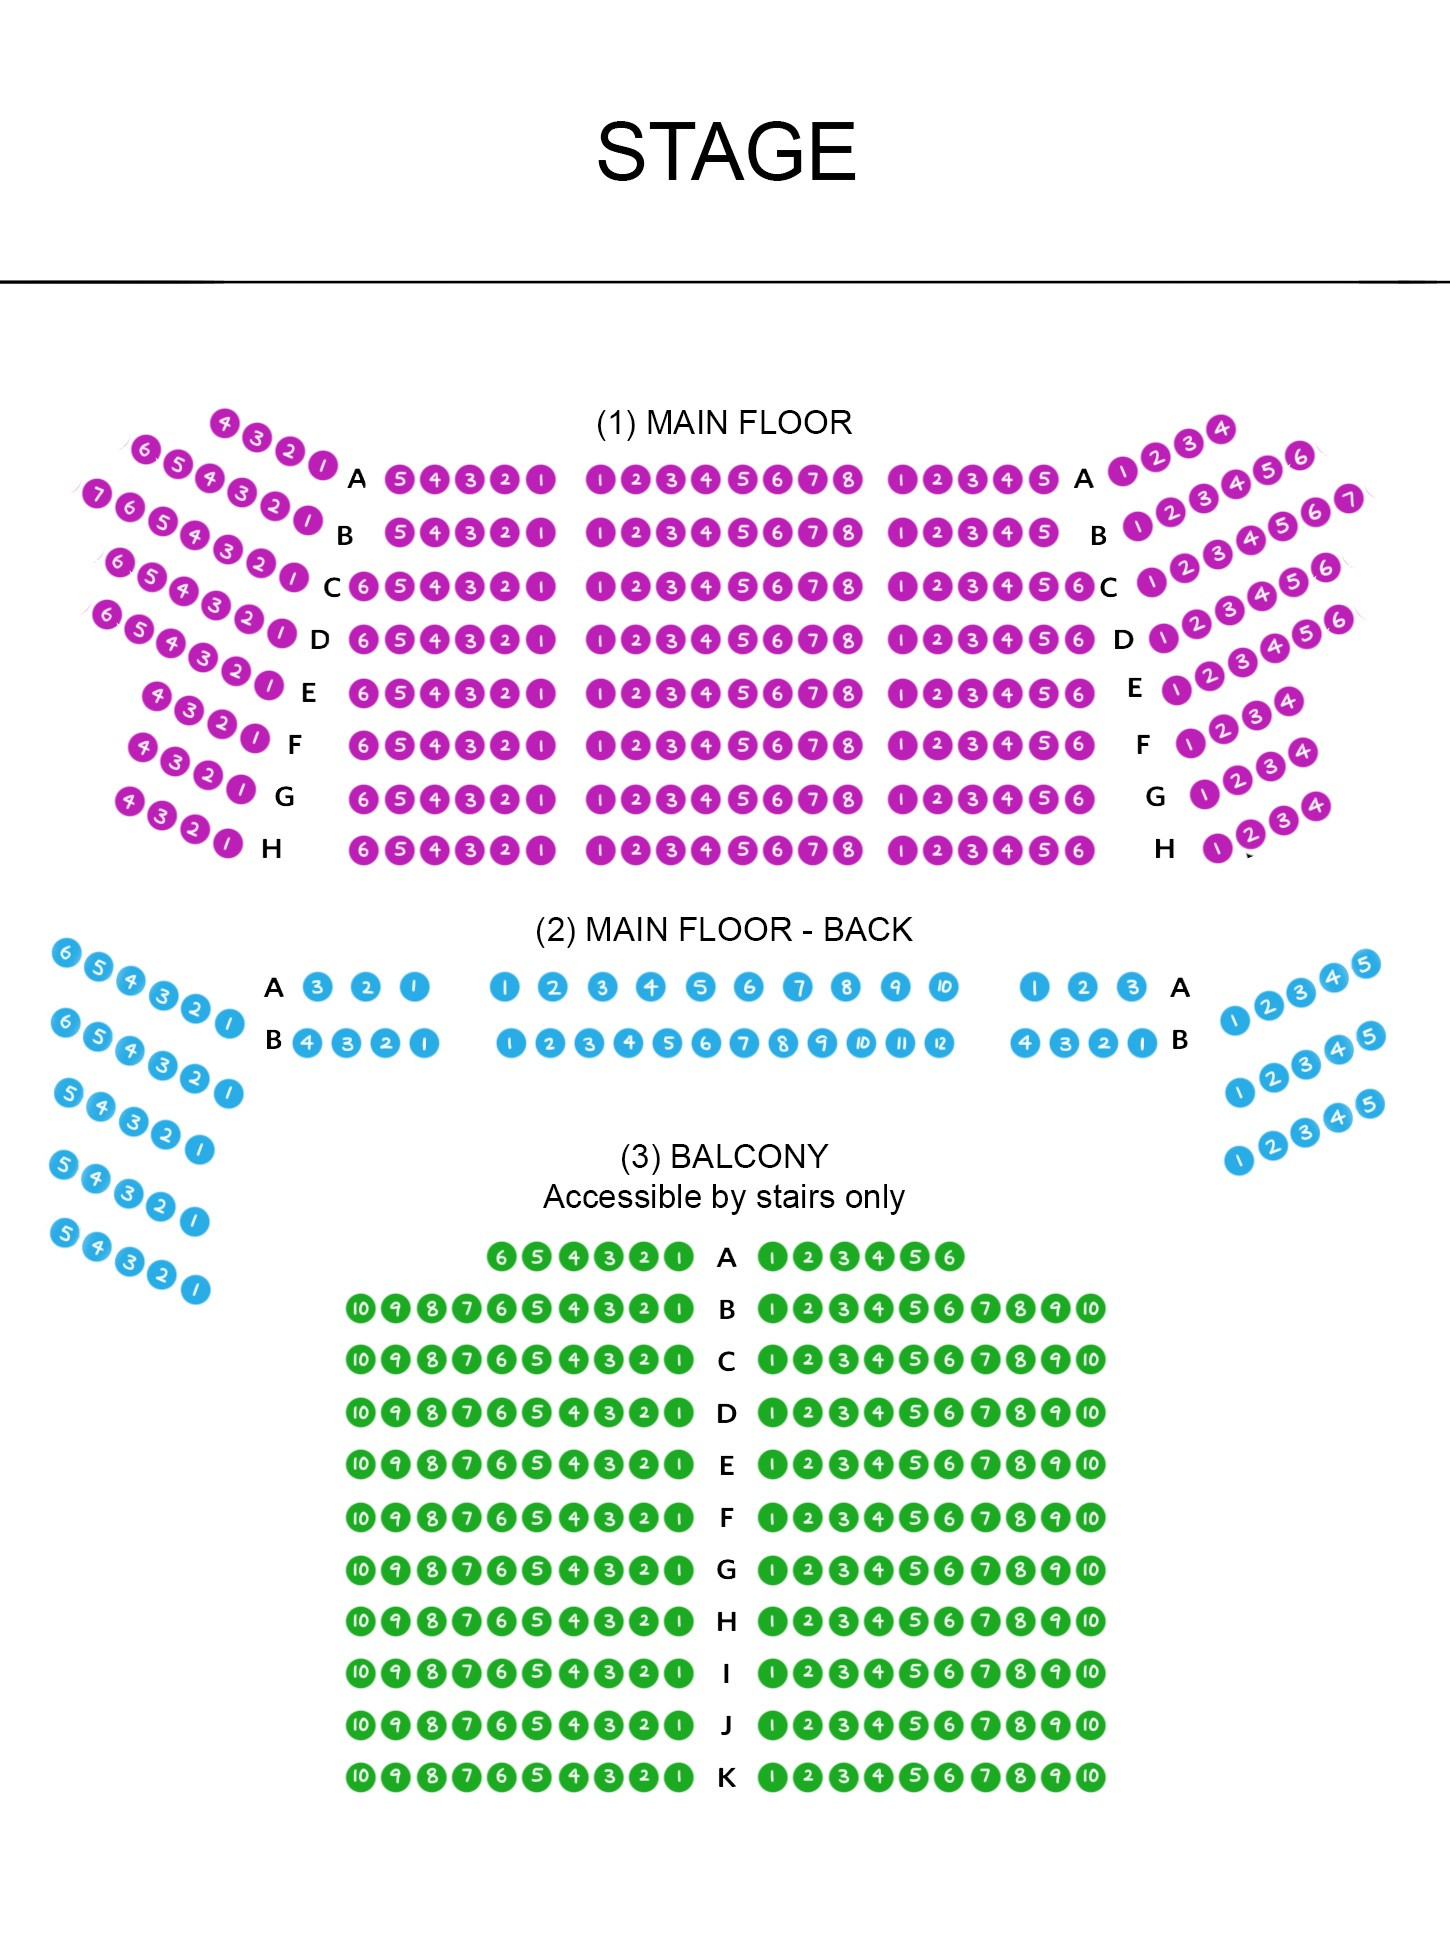 Nichols Concert Hall Seating Map